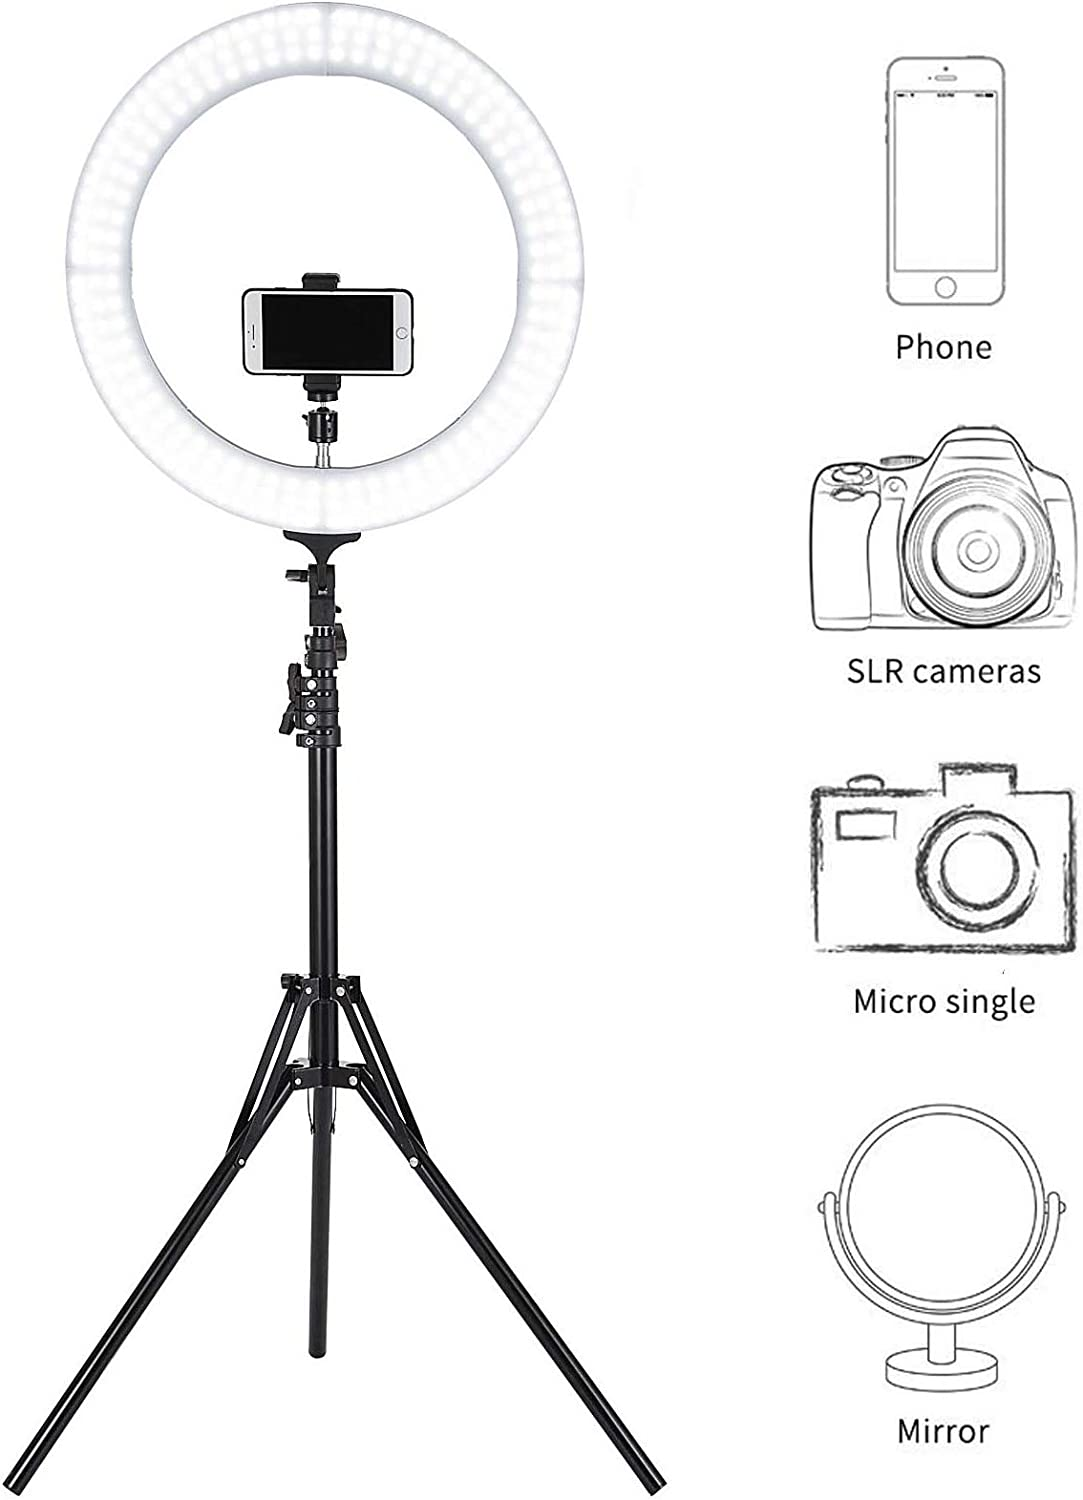 Happybuy LED Dimmable Ring Light 19inch Ring Light with Stand Adjustable Color Temperature 2700K-5500K Diva Ring Light for Portrait YouTube Video Vlog and Makeup